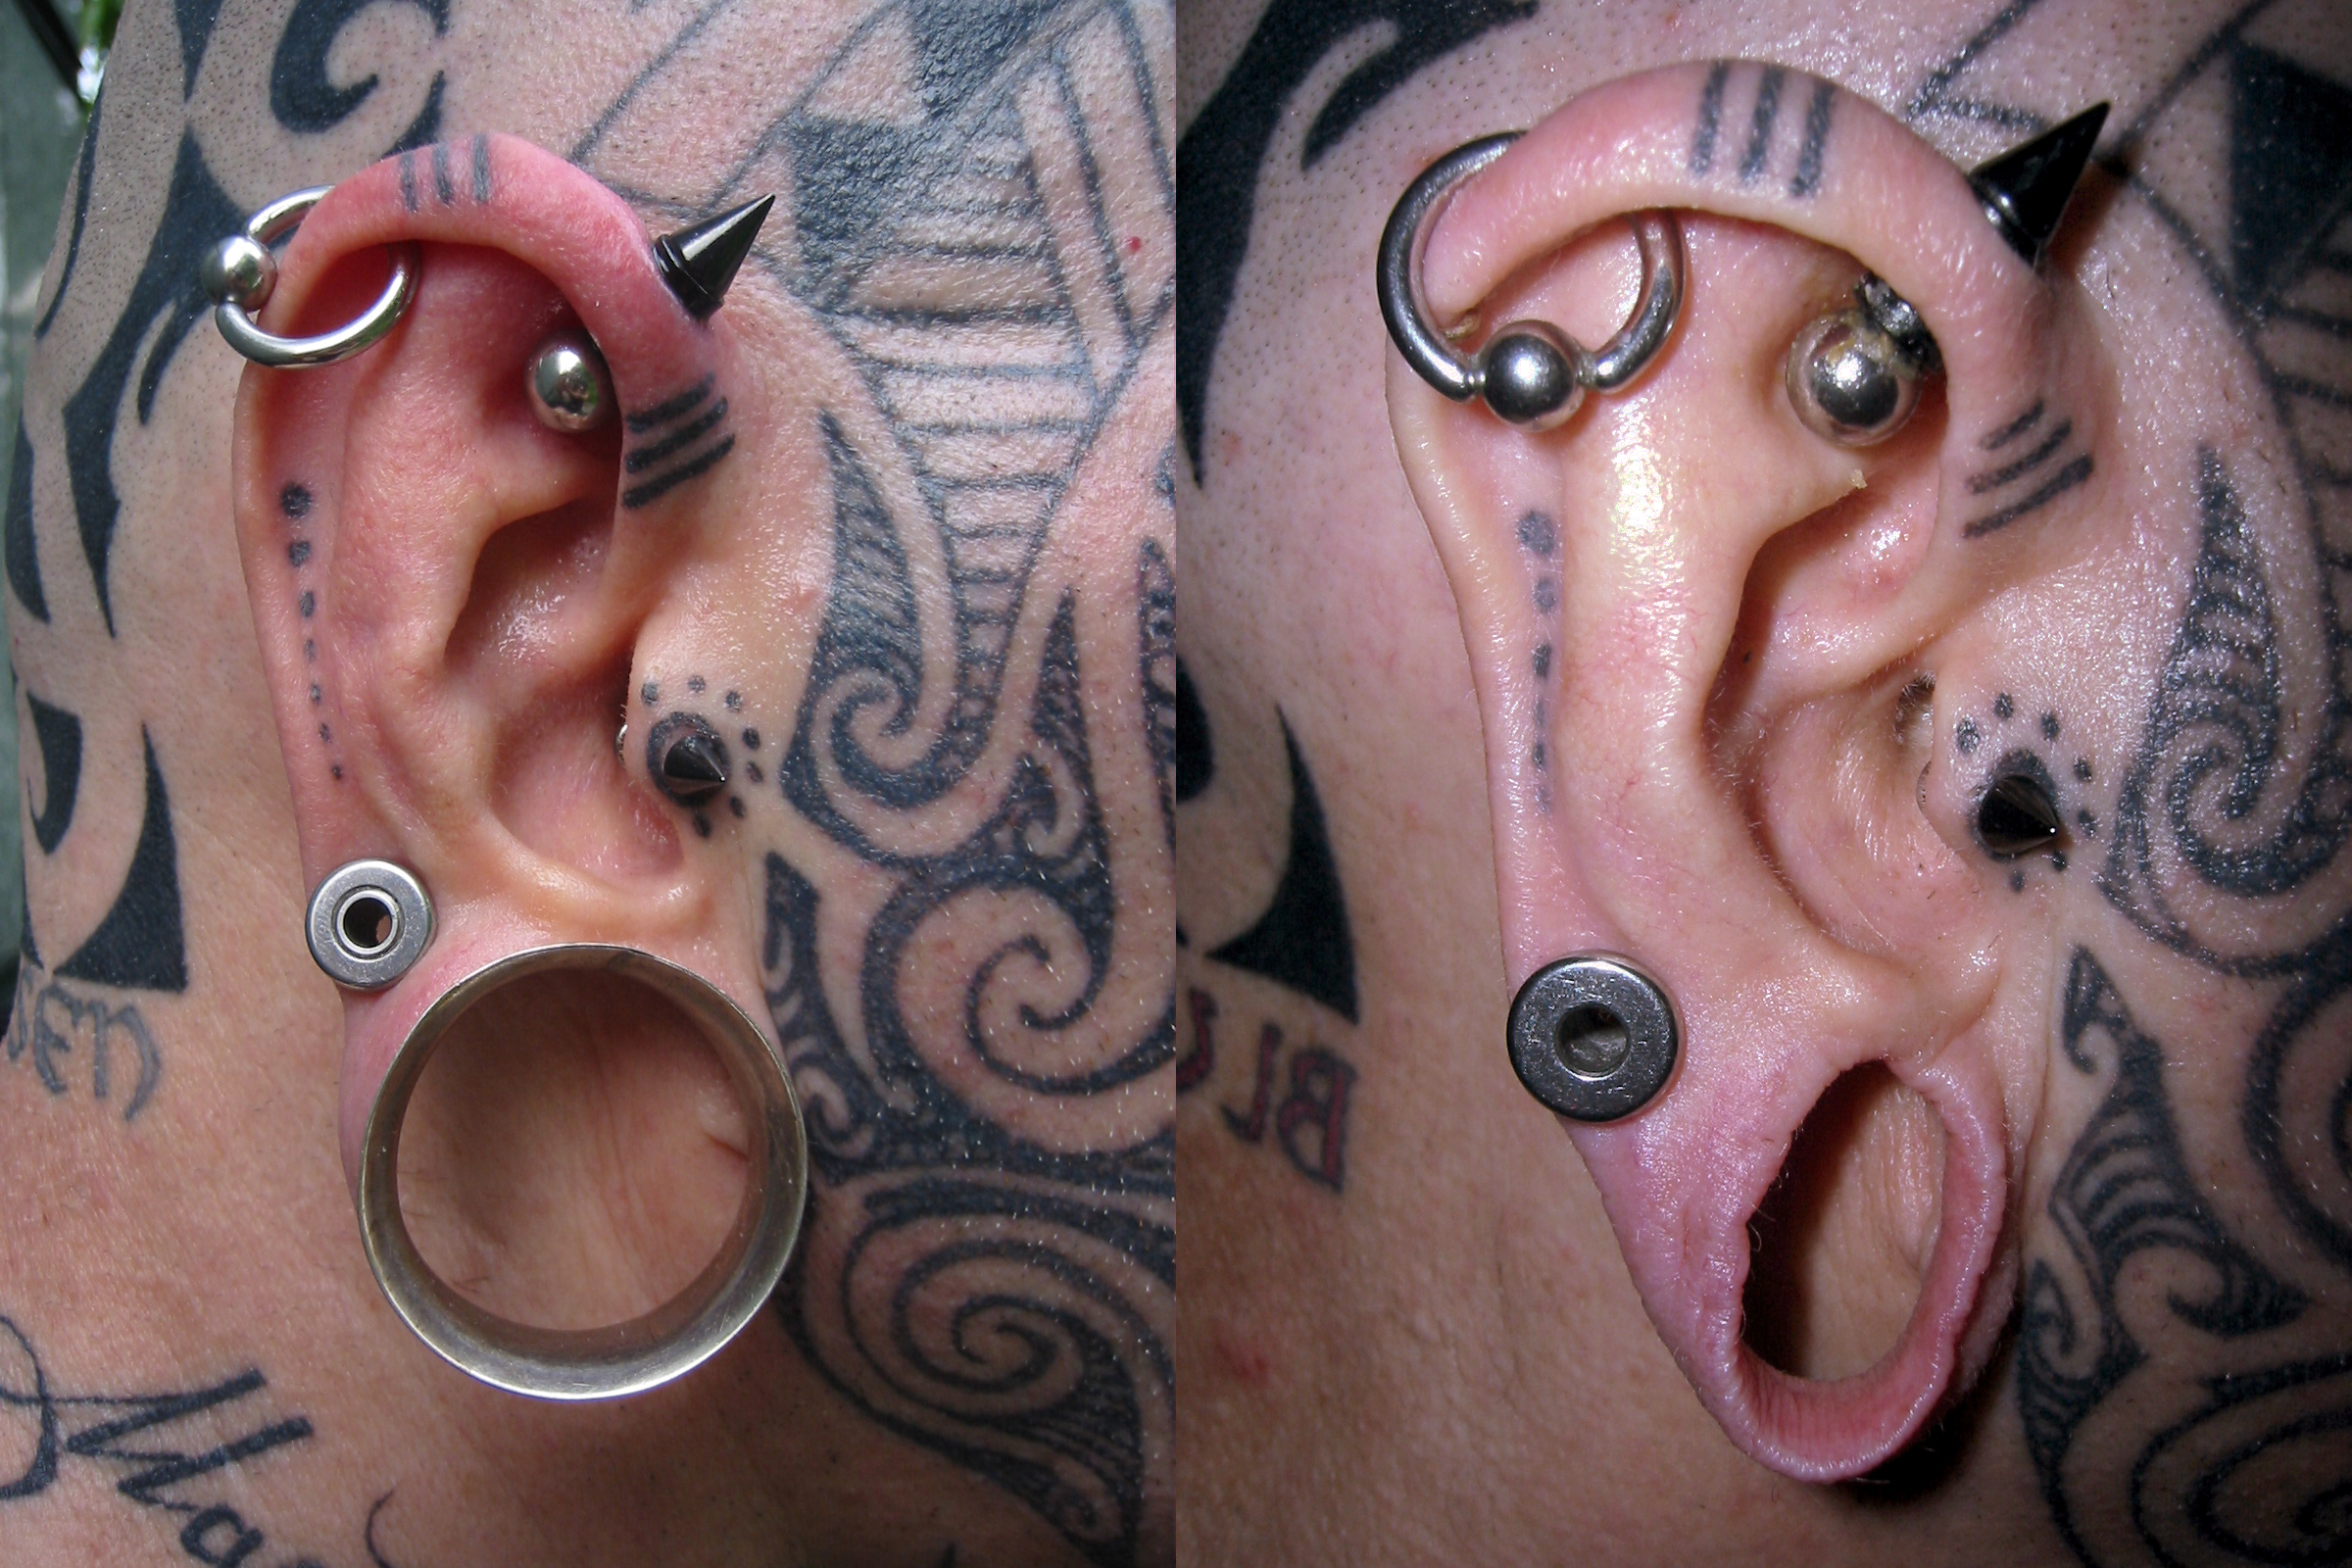 How To Stretch Your Ears - Male Models Picture